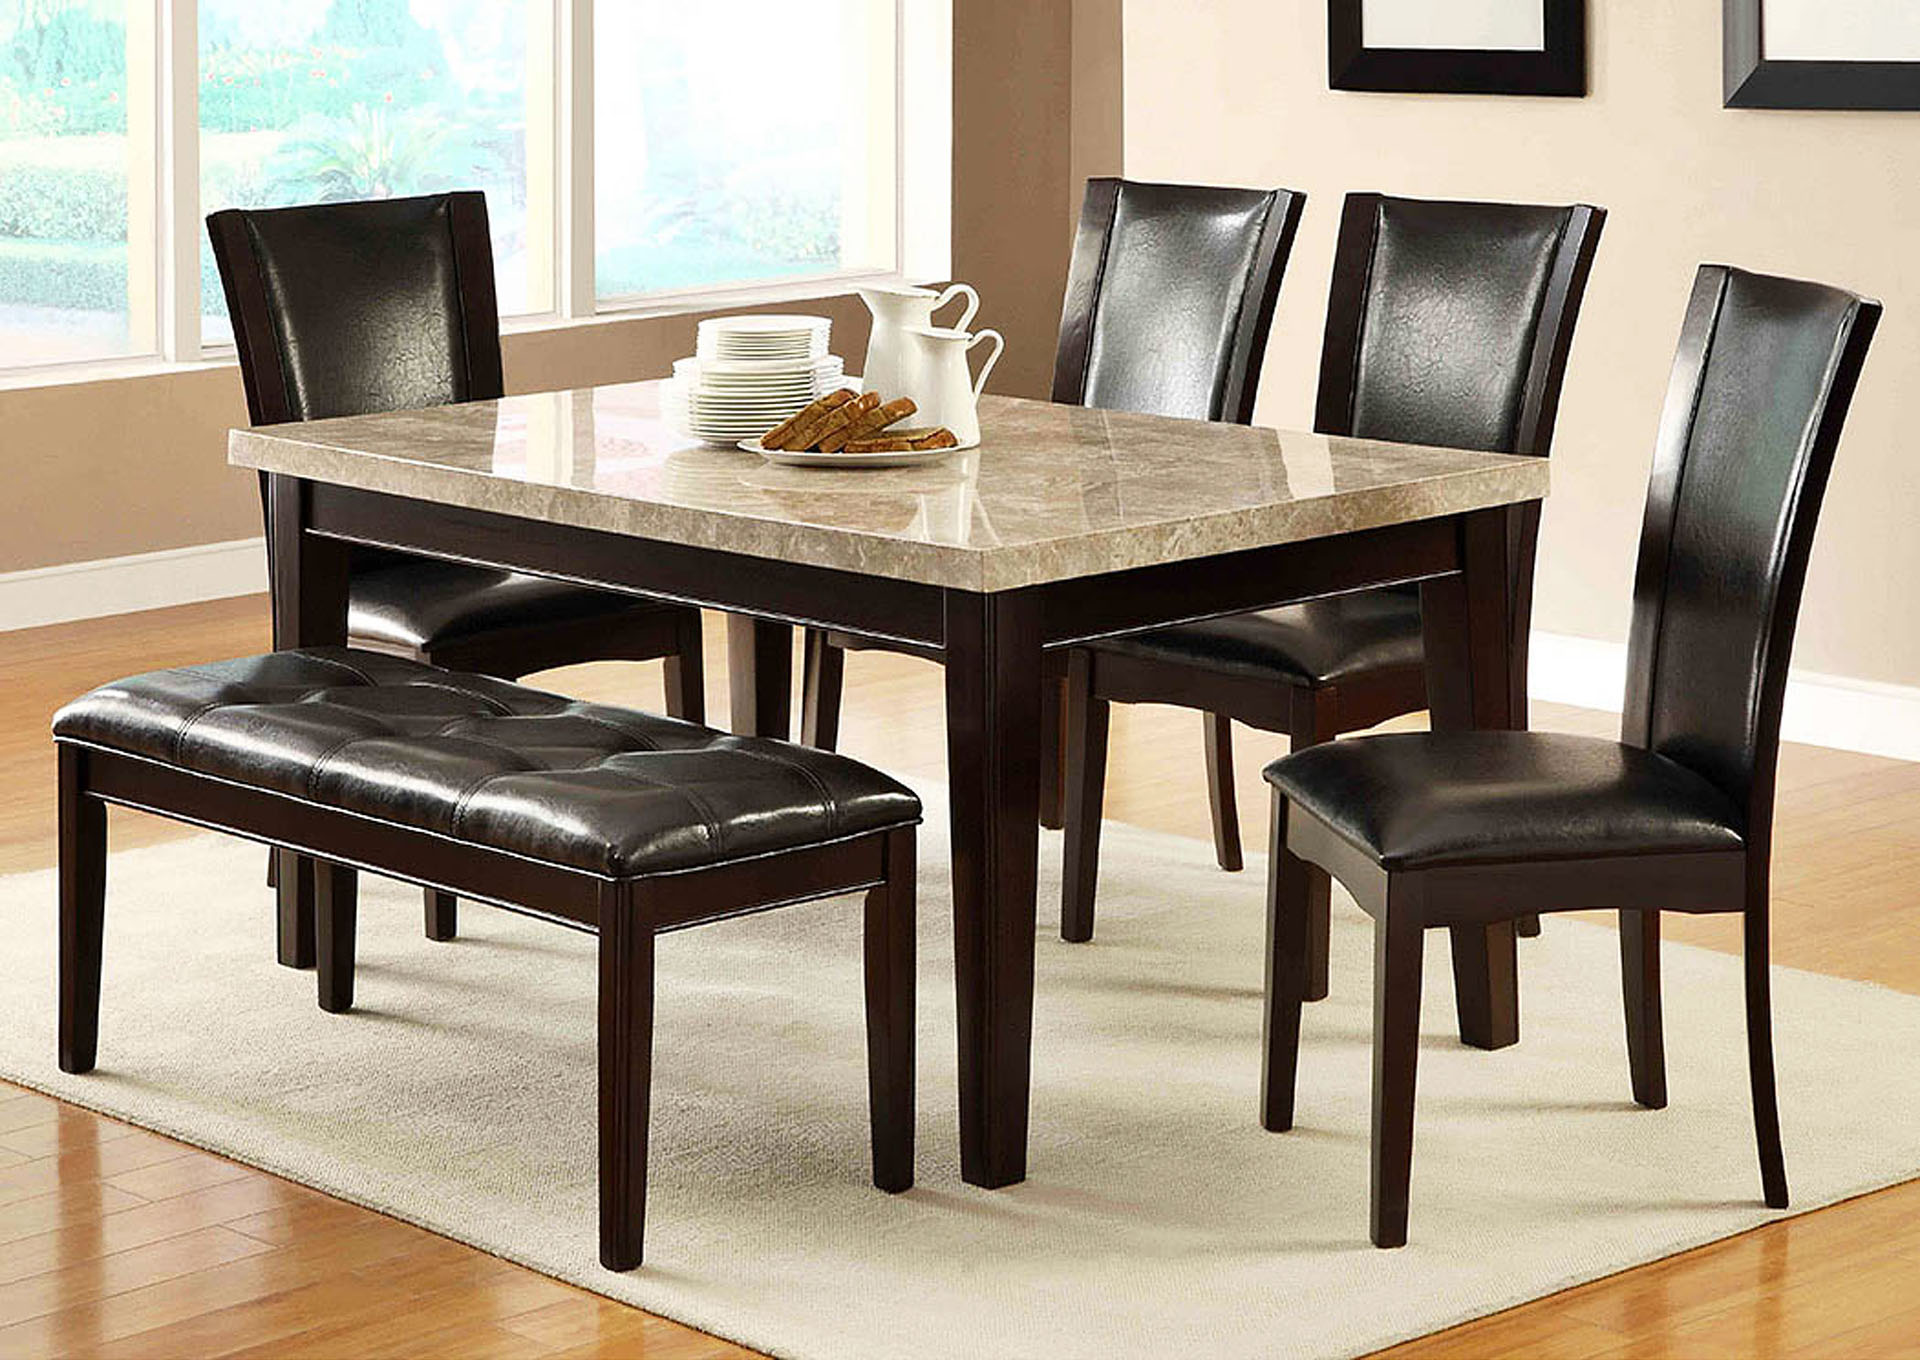 13 Piece Dining Room Table